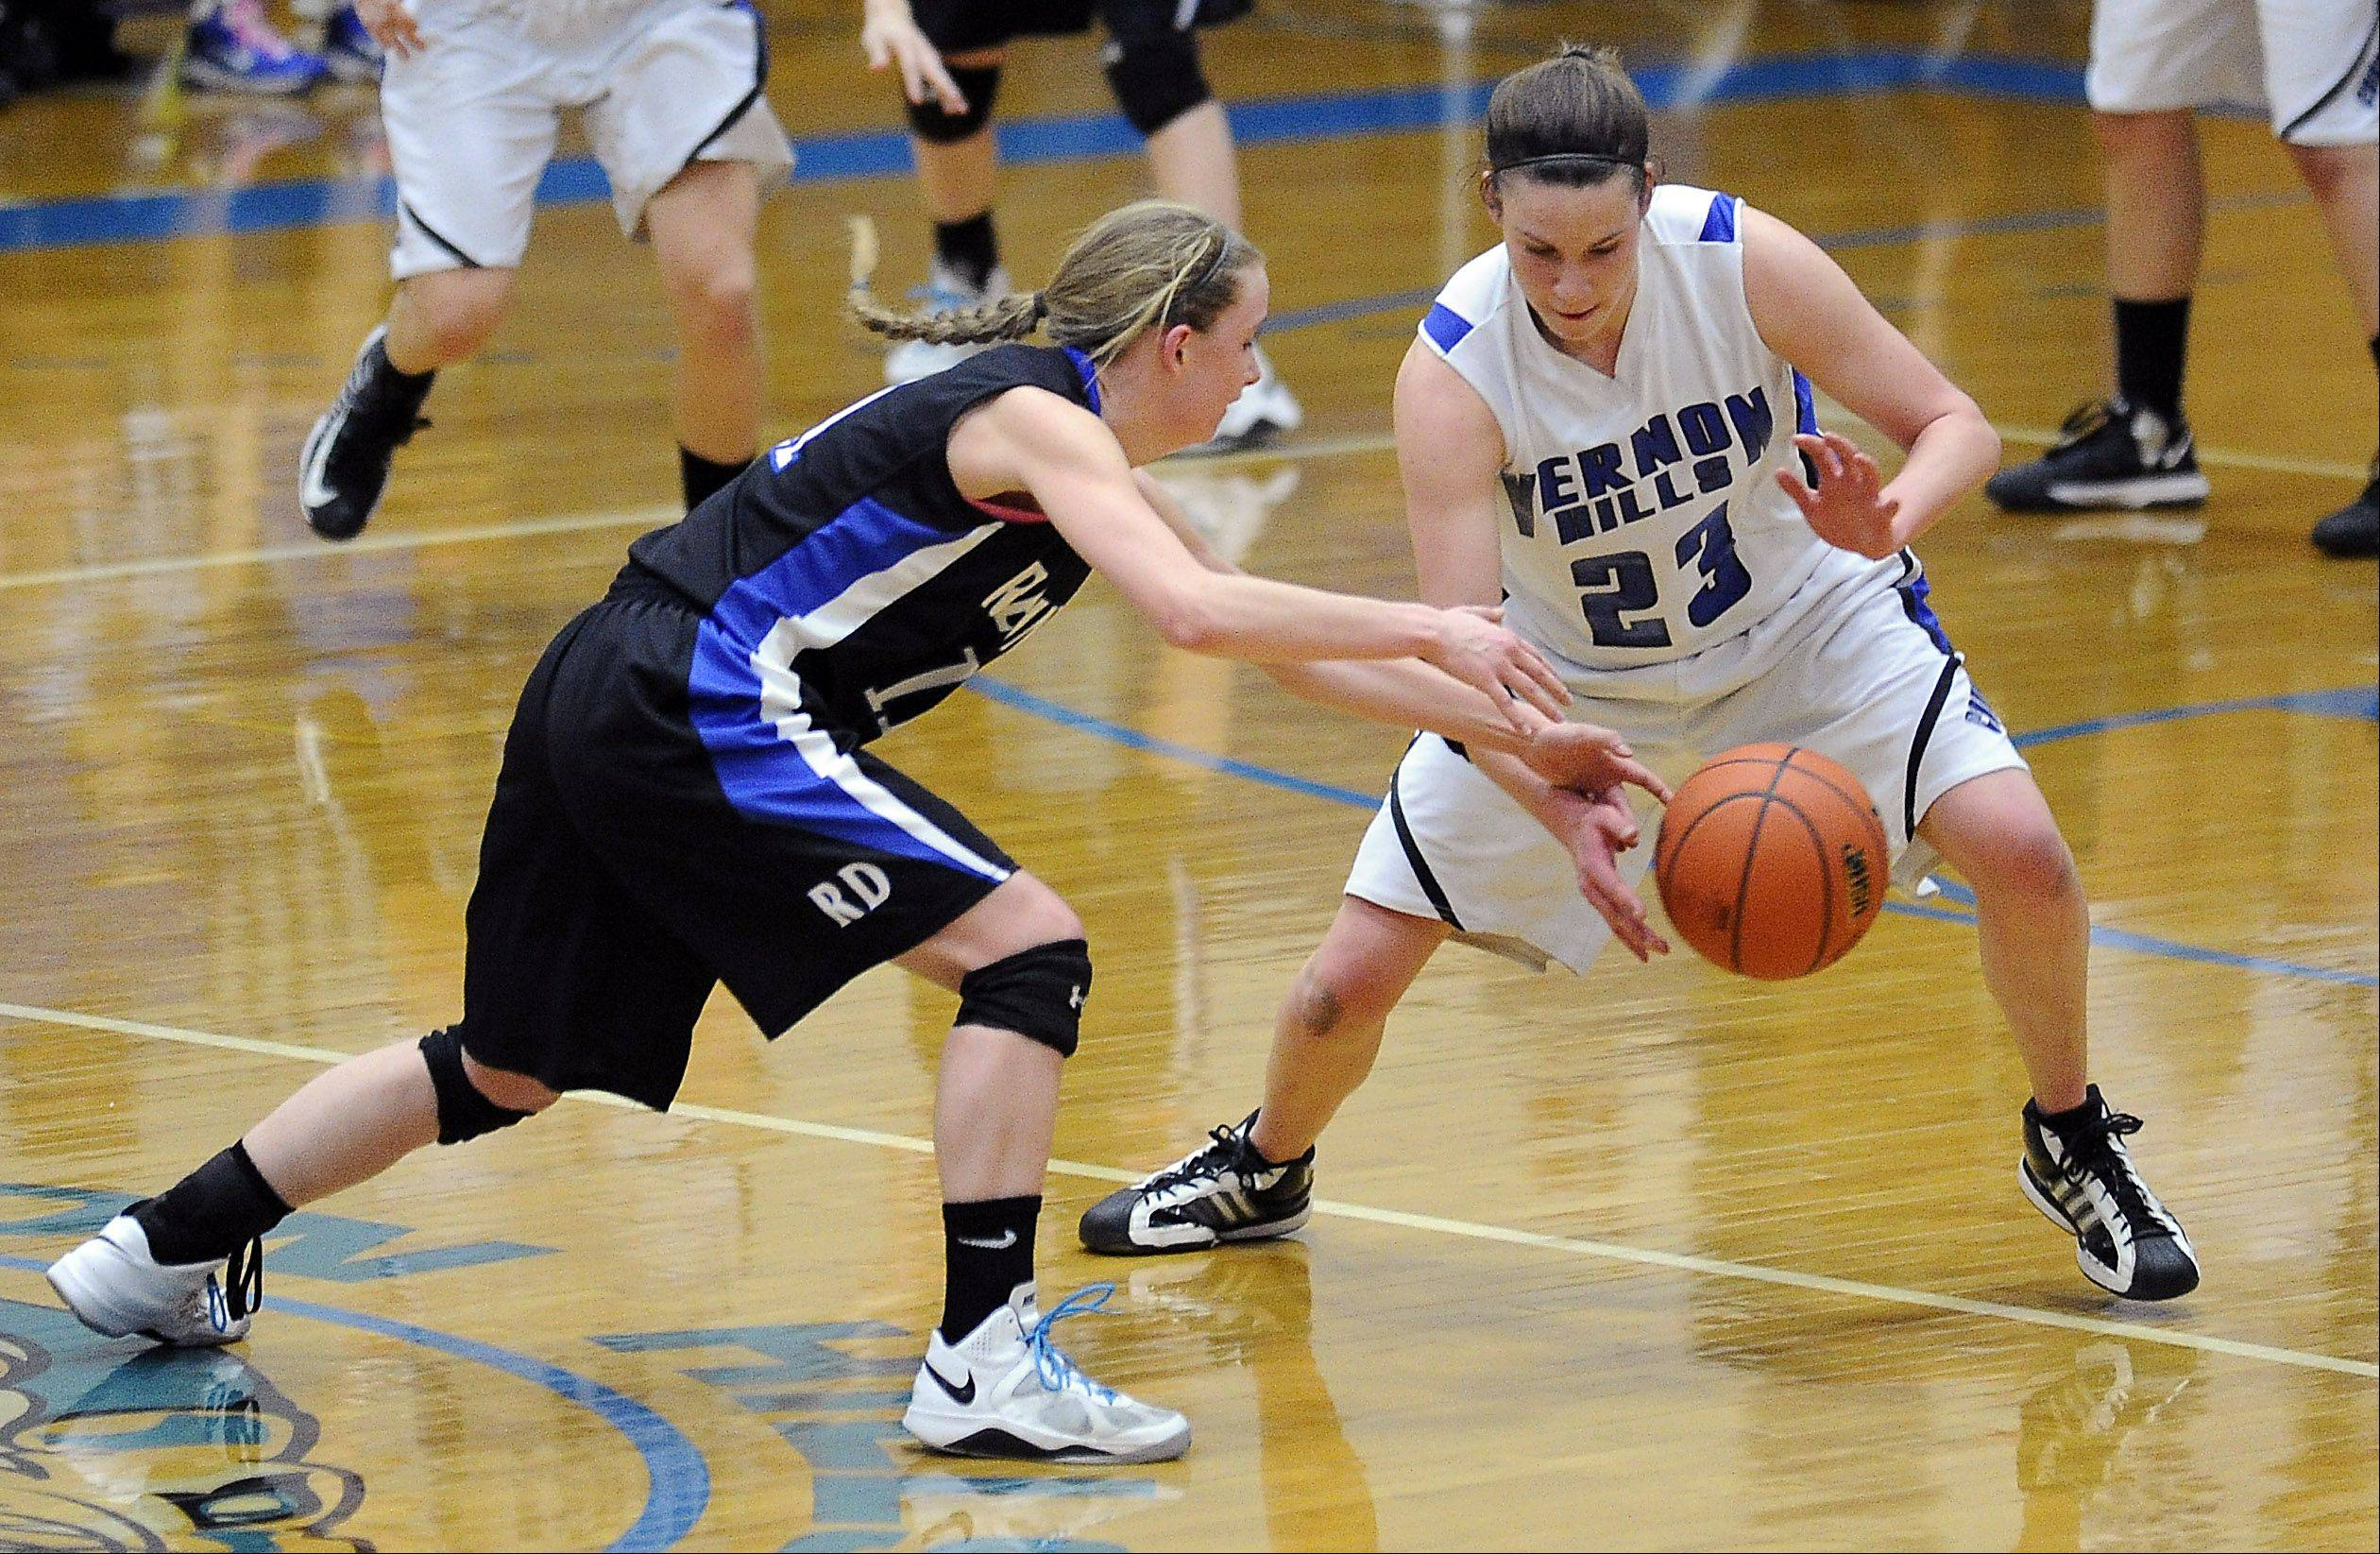 Vernon Hills' Brie Bahlmann steals the ball away from Regina Dominican's Lindsey Welch.